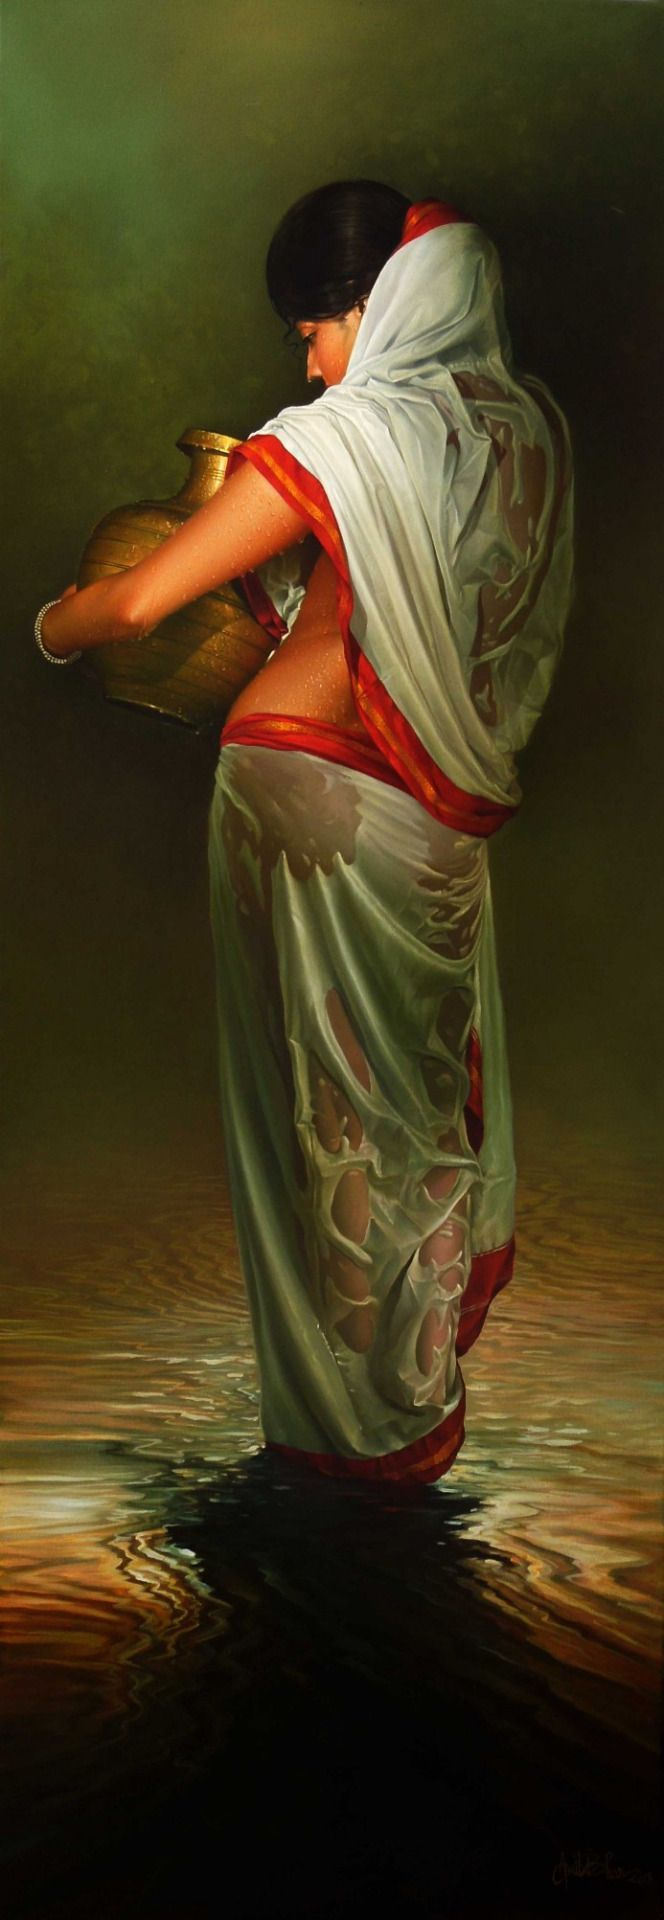 wet woman Amit Bhar | Paintings | Pinterest | Women's and Posts www.pinterest.com664 × 1920Buscar por imagen